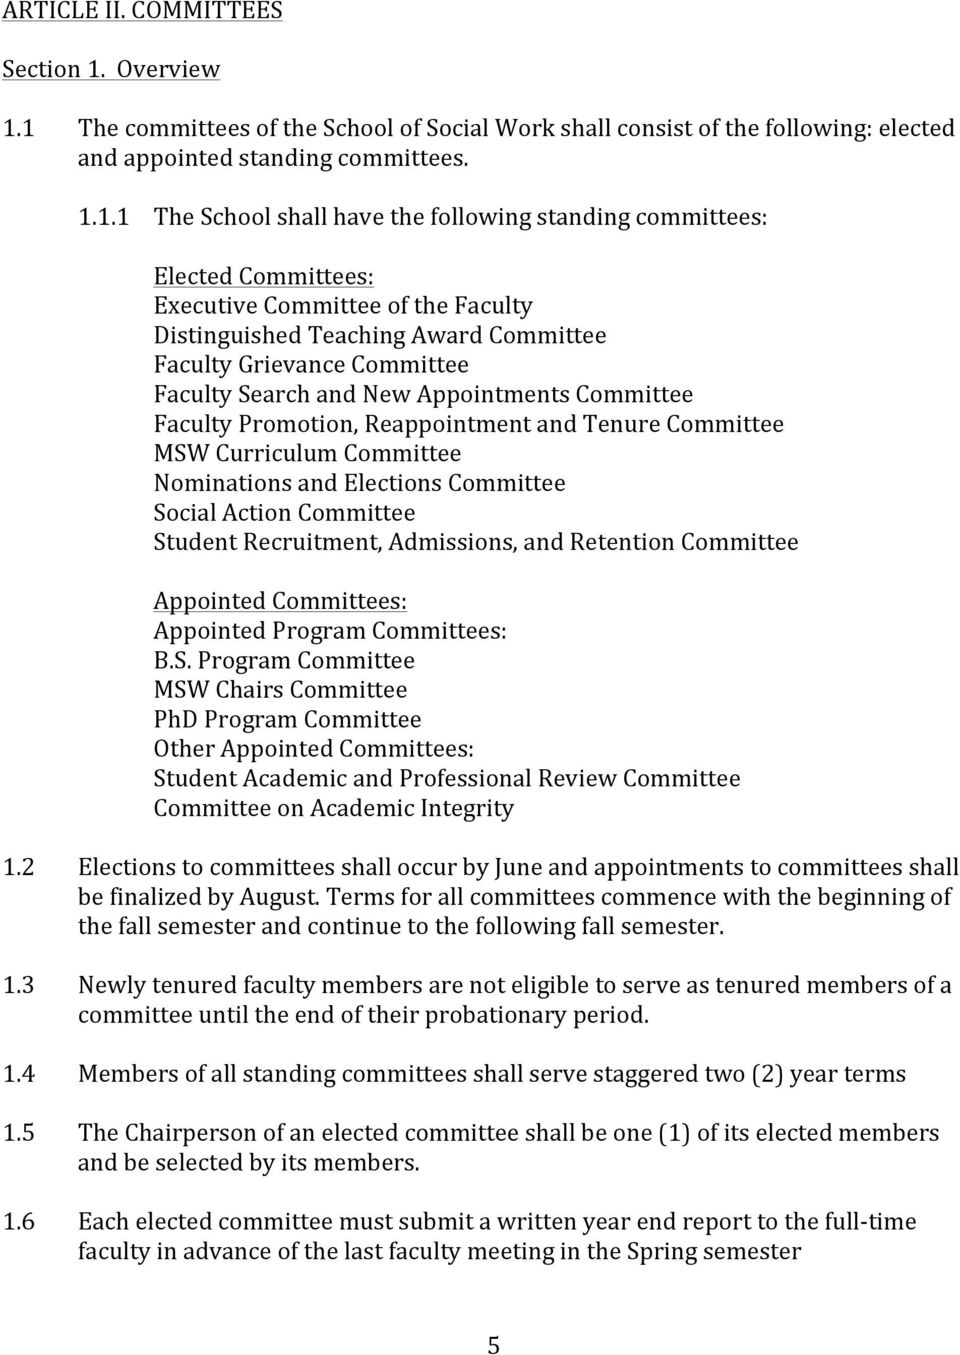 1 The committees of the School of Social Work shall consist of the following: elected and appointed standing committees. 1.1.1 The School shall have the following standing committees: Elected